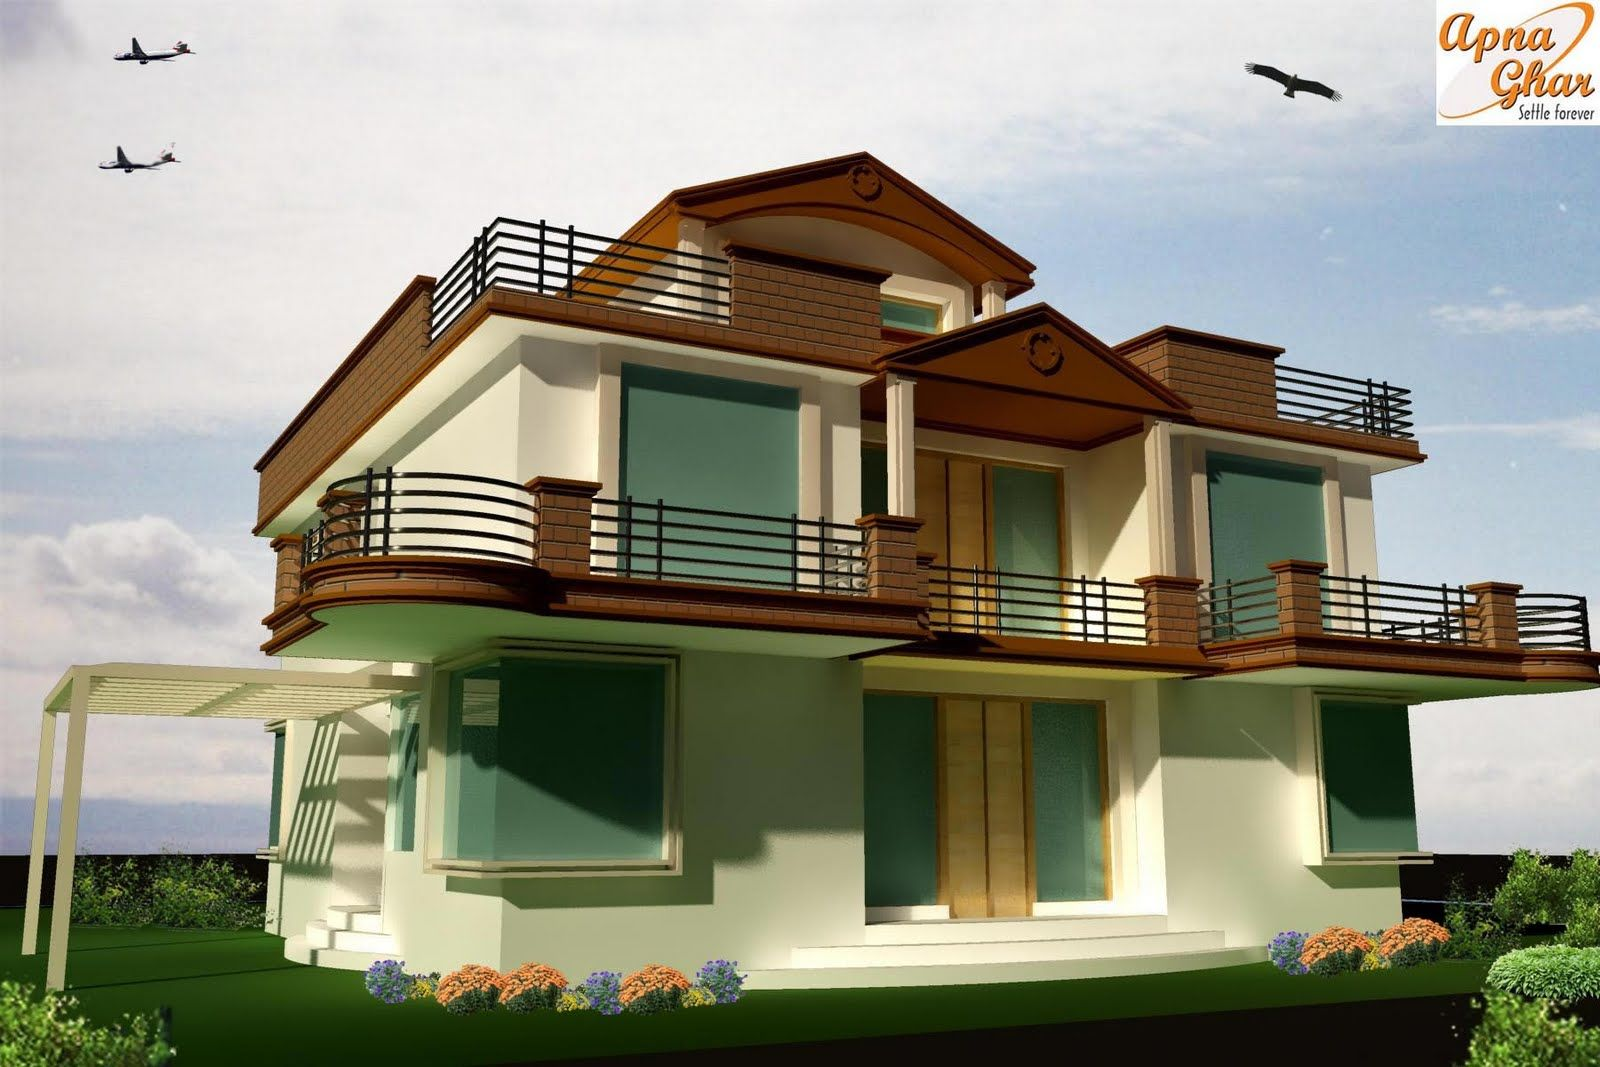 Architecture Design For Indian Homes architectural+designs | modern-architectural-house-plans